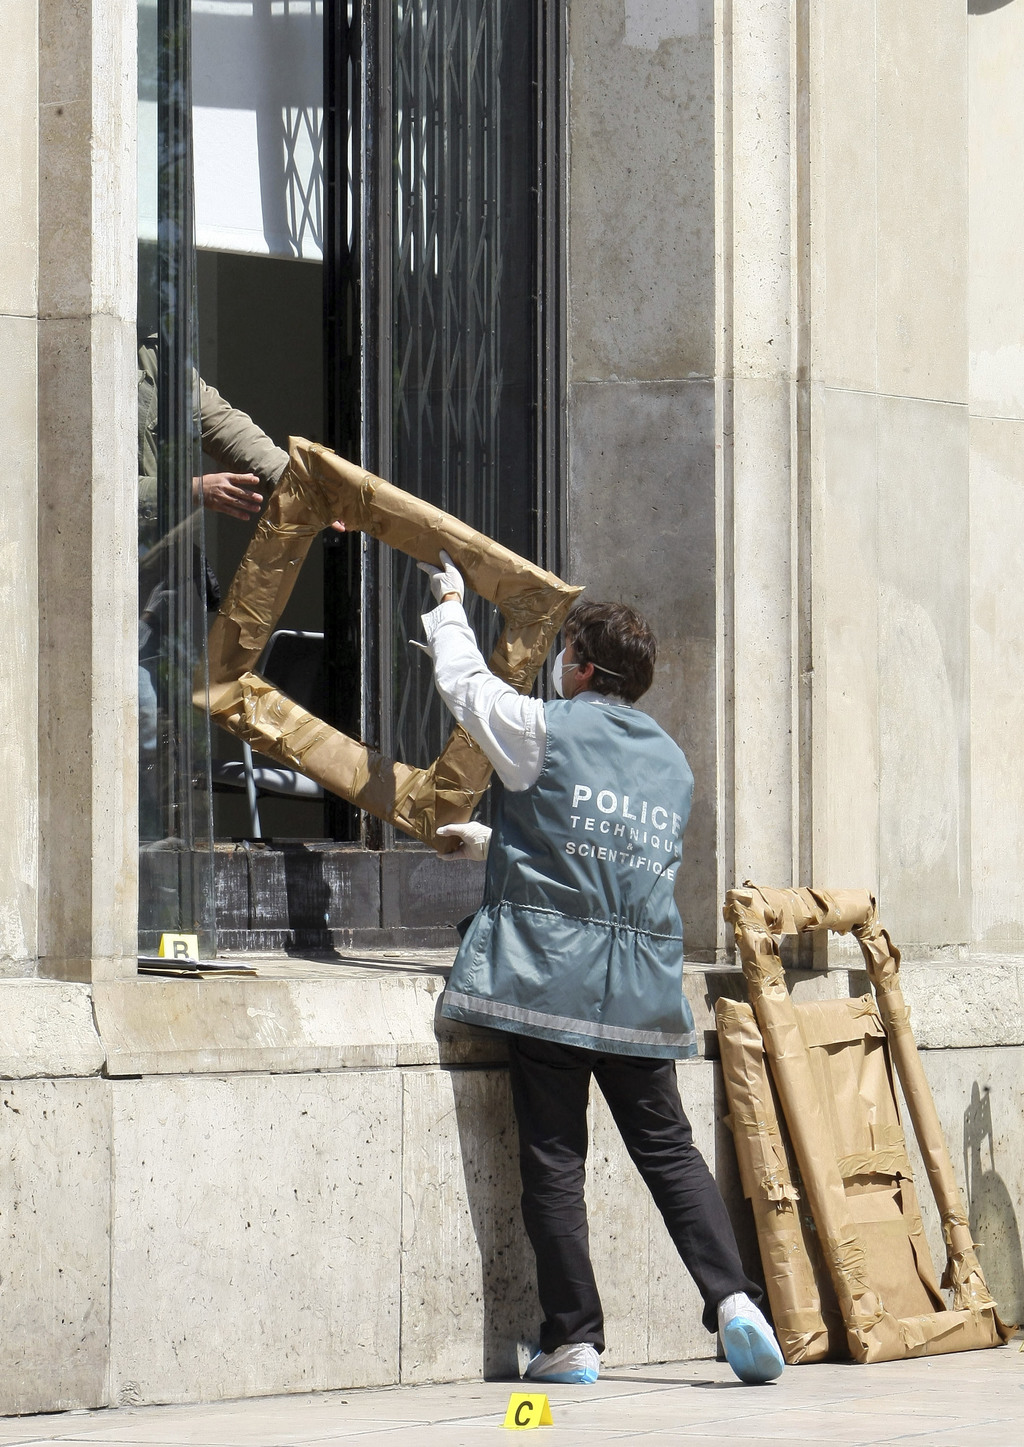 FILE - In this May 20, 2010 file photo,a police officer hands the packed frames of the stolen paintings, to a colleague, from outside t...